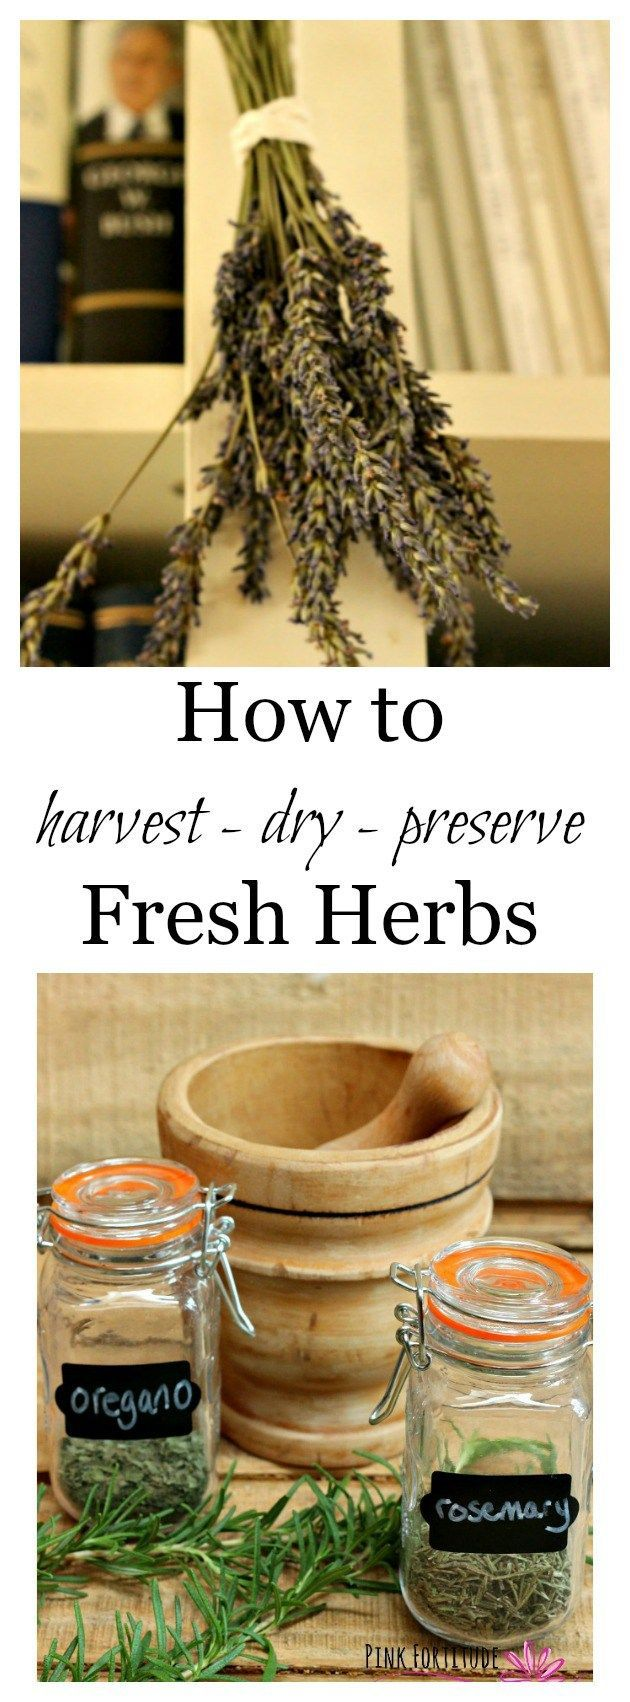 Preserved cypress bonsai 7 h contemporary phoenix by botanical - How To Harvest Dry And Preserve Fresh Herbs